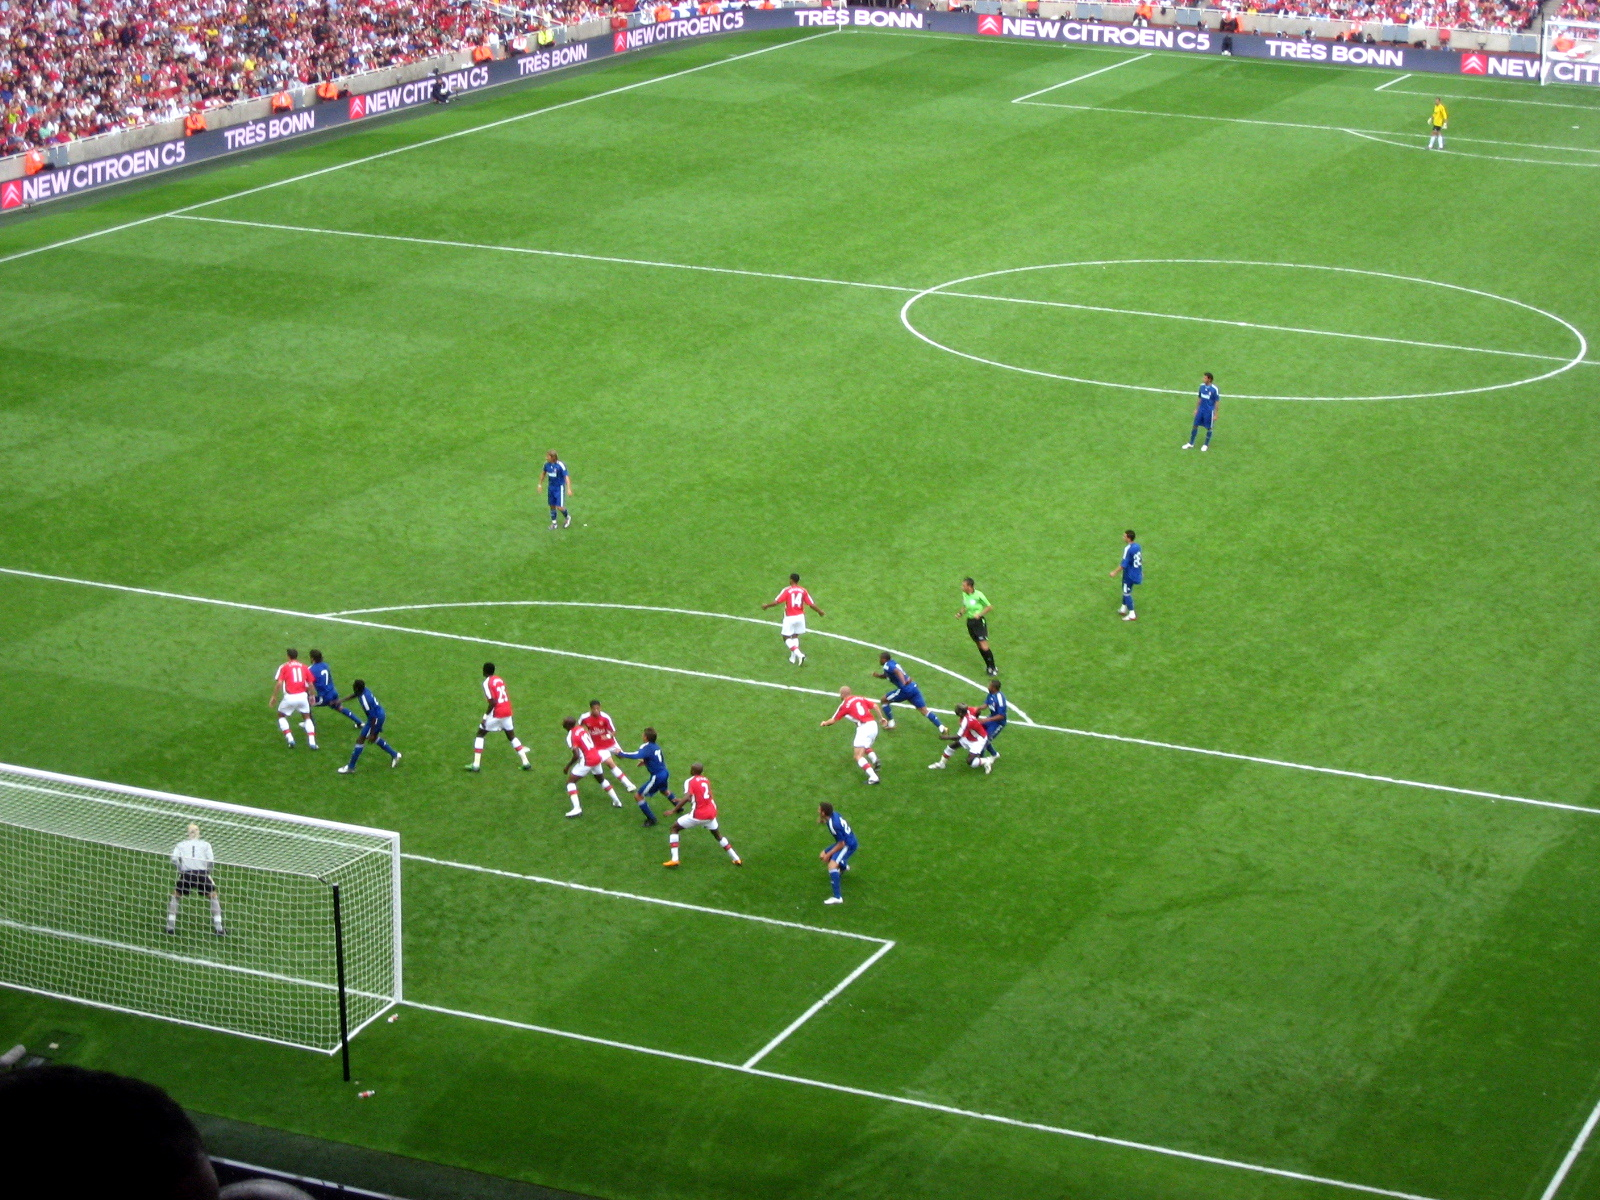 real madrid vs arsenal - photo #30